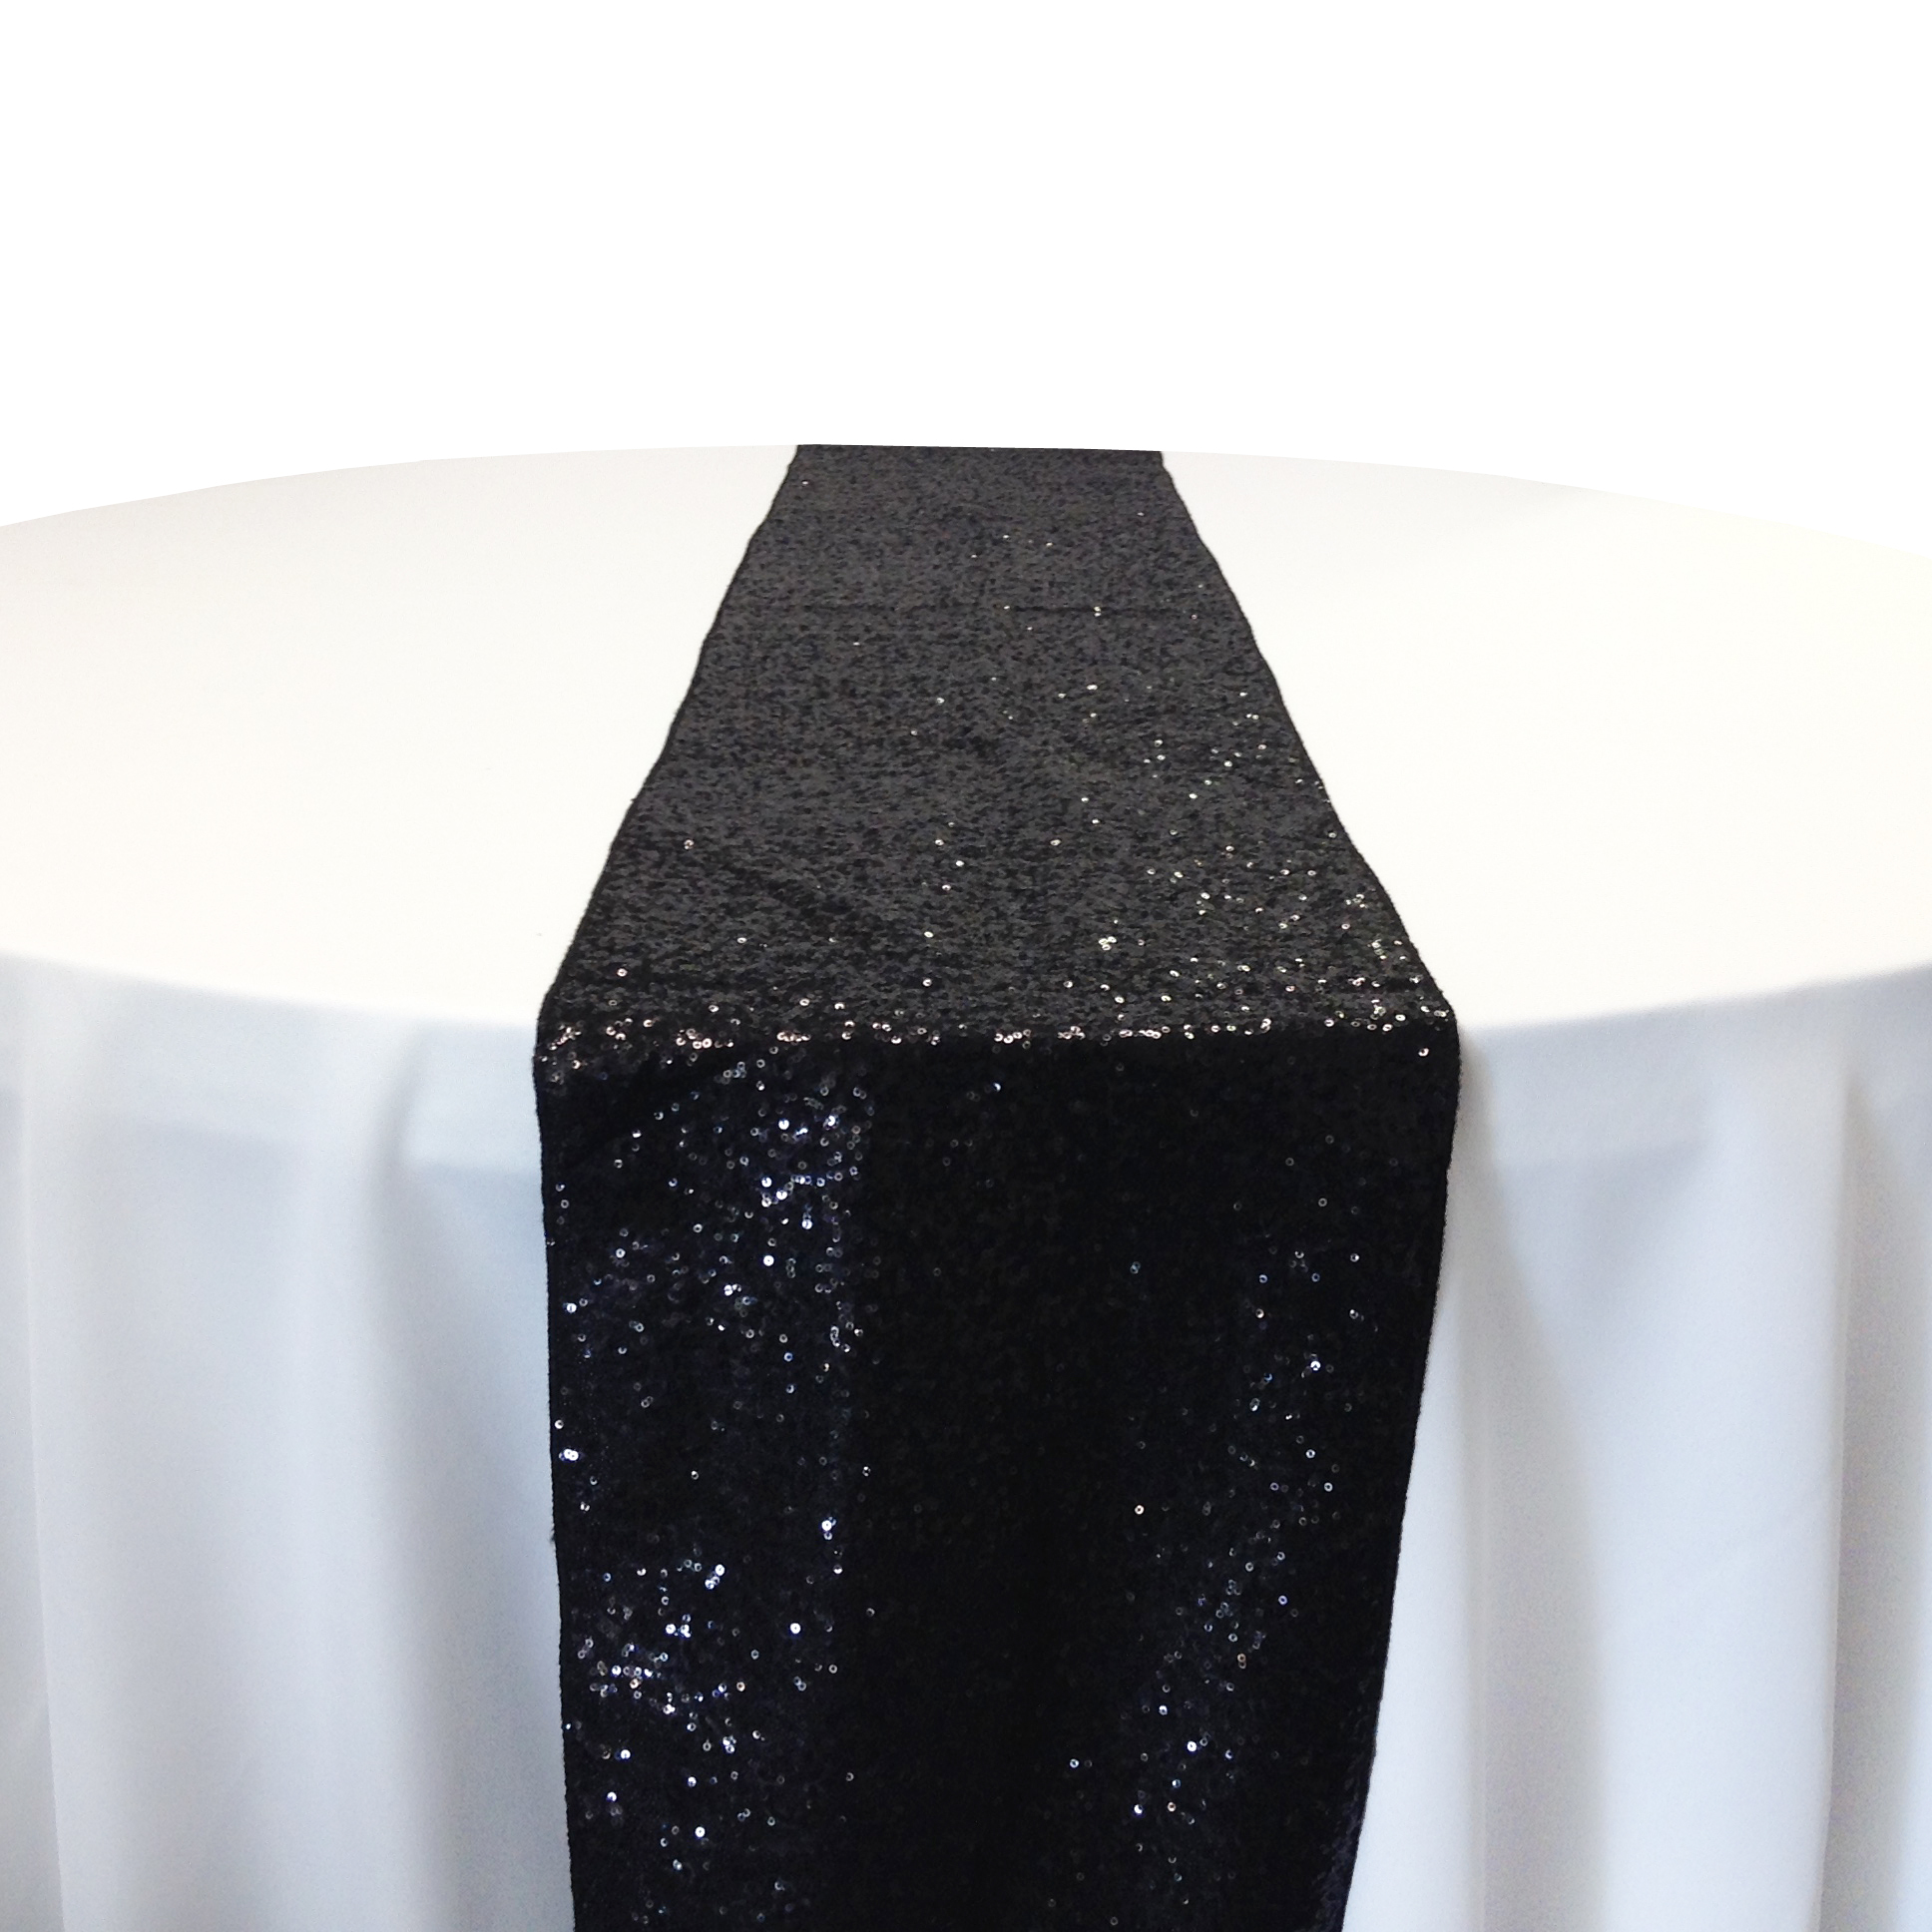 Black Taffeta Sequin Table Runner Rental Black Taffeta Glitz Table Runner Rental